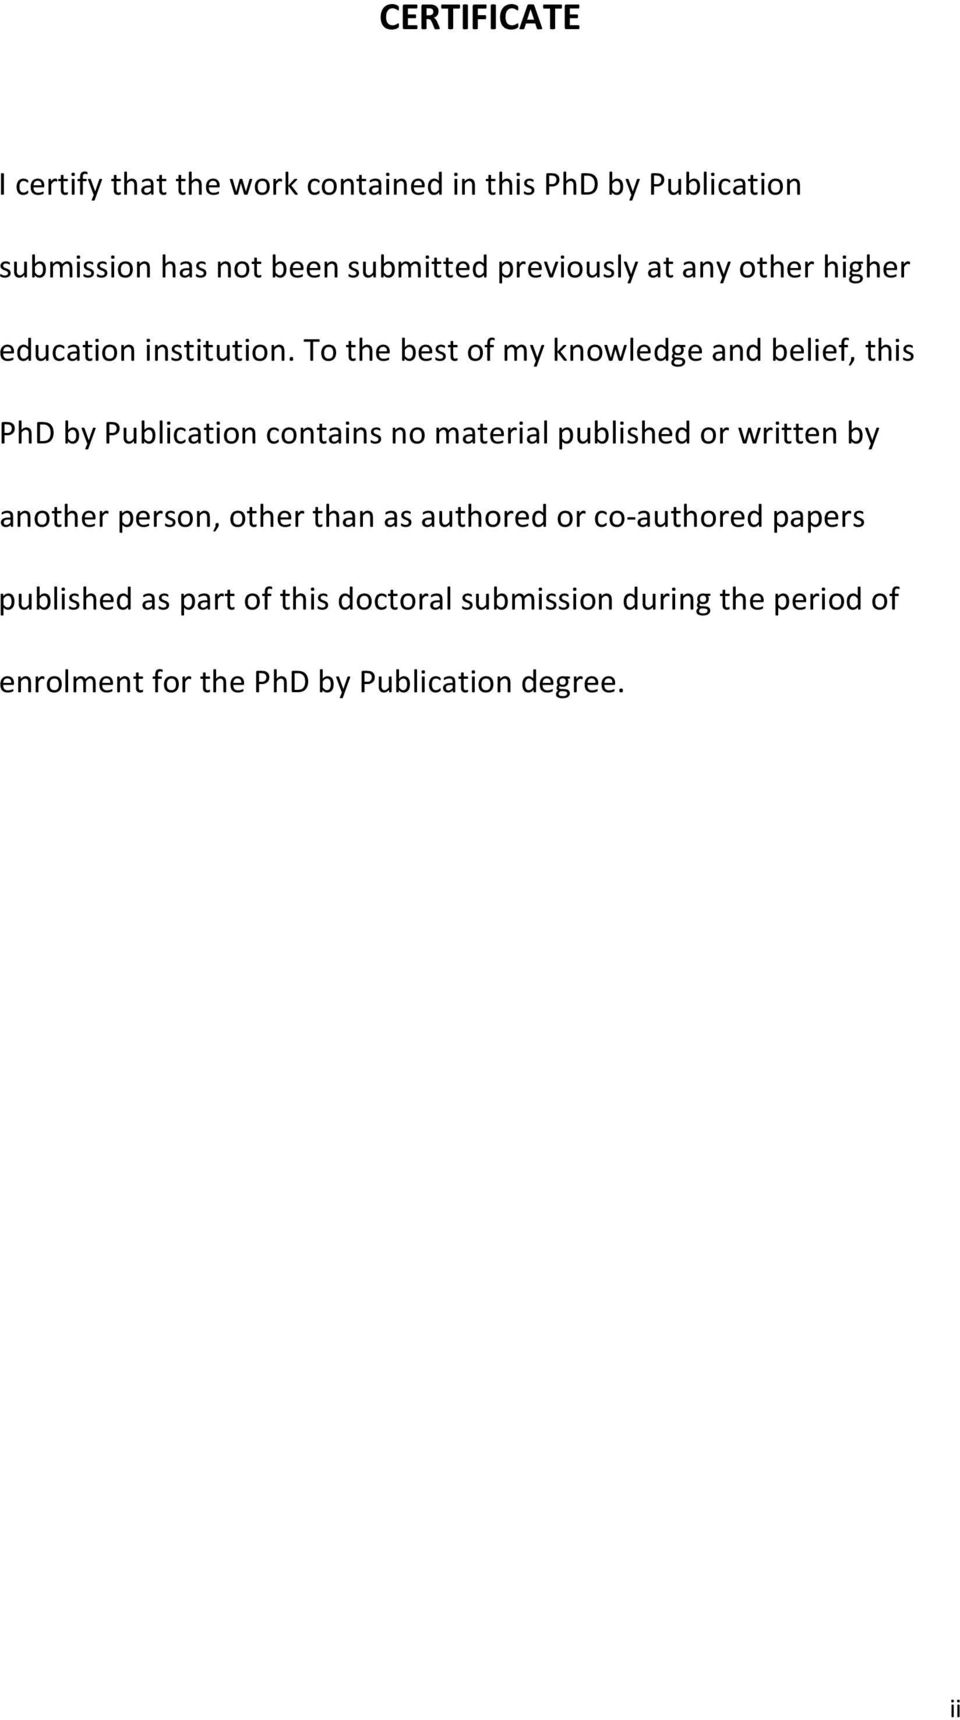 To the best of my knowledge and belief, this PhD by Publication contains no material published or written by